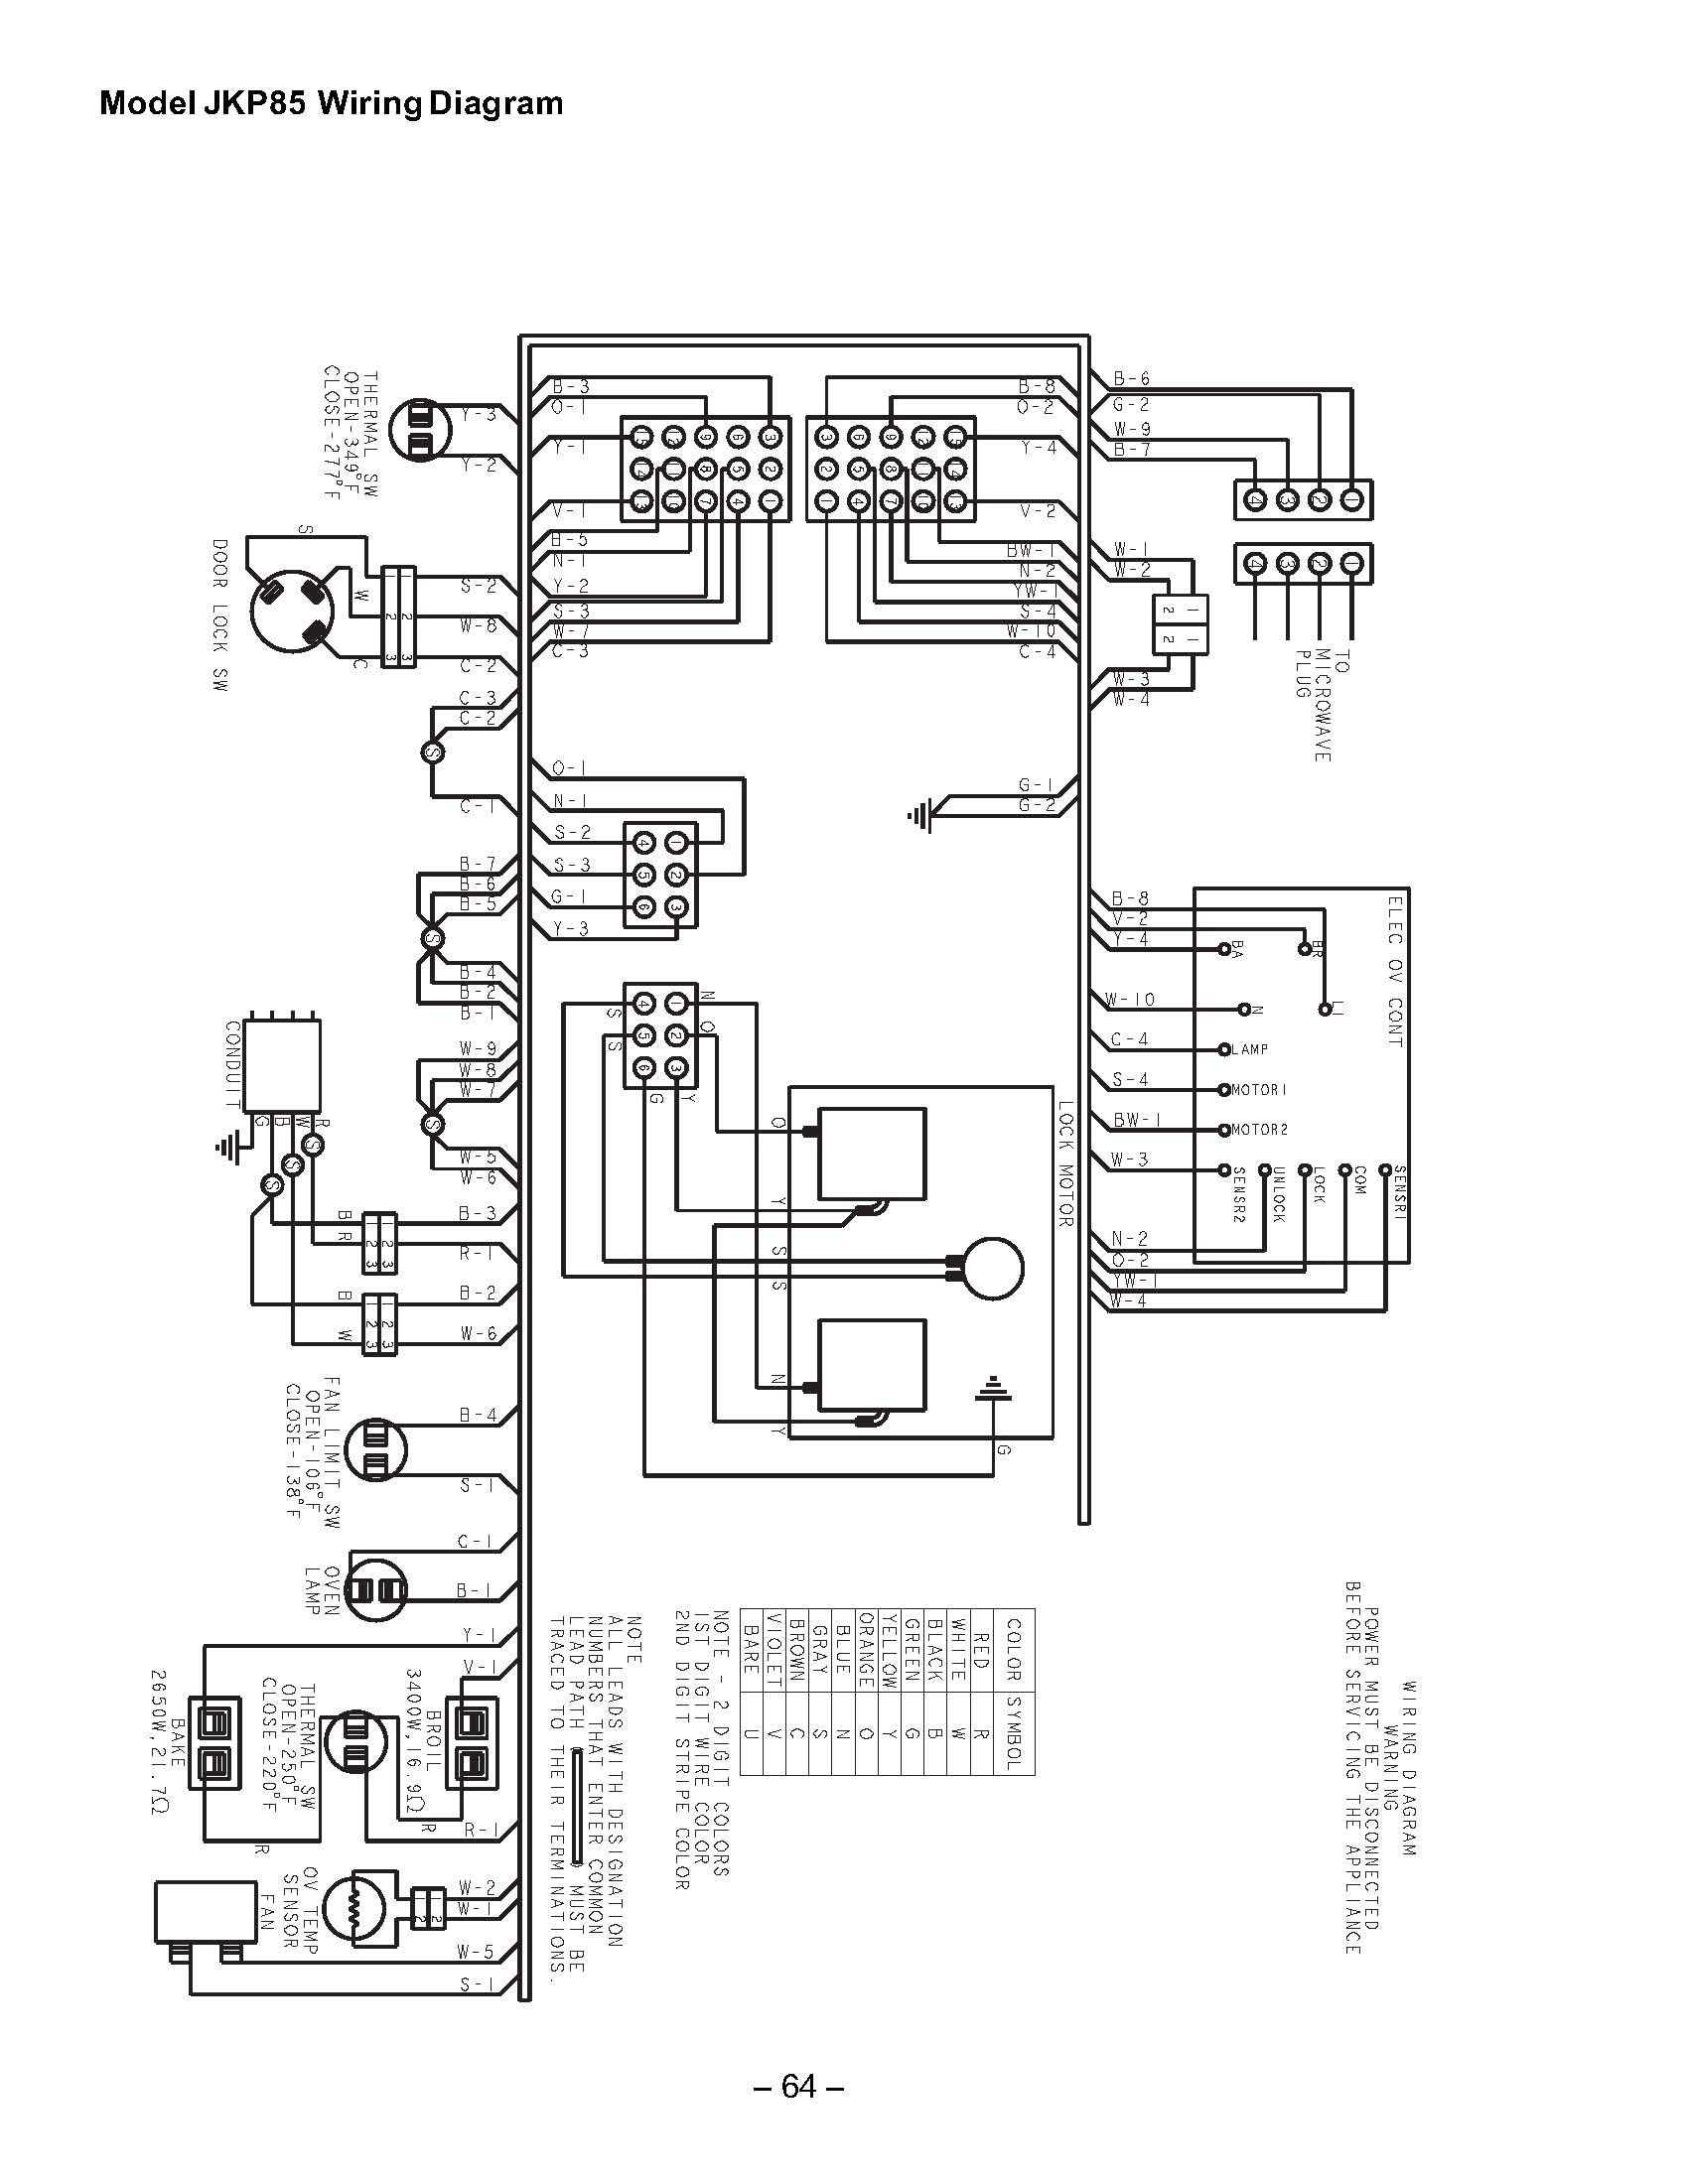 DIAGRAM] A Abloy Wiring Diagrams FULL Version HD Quality Wiring Diagrams -  DIAGRAMTSHIRT.SILVI-TRIMMINGS.ITDiagram Database - Silvi-trimmings.it